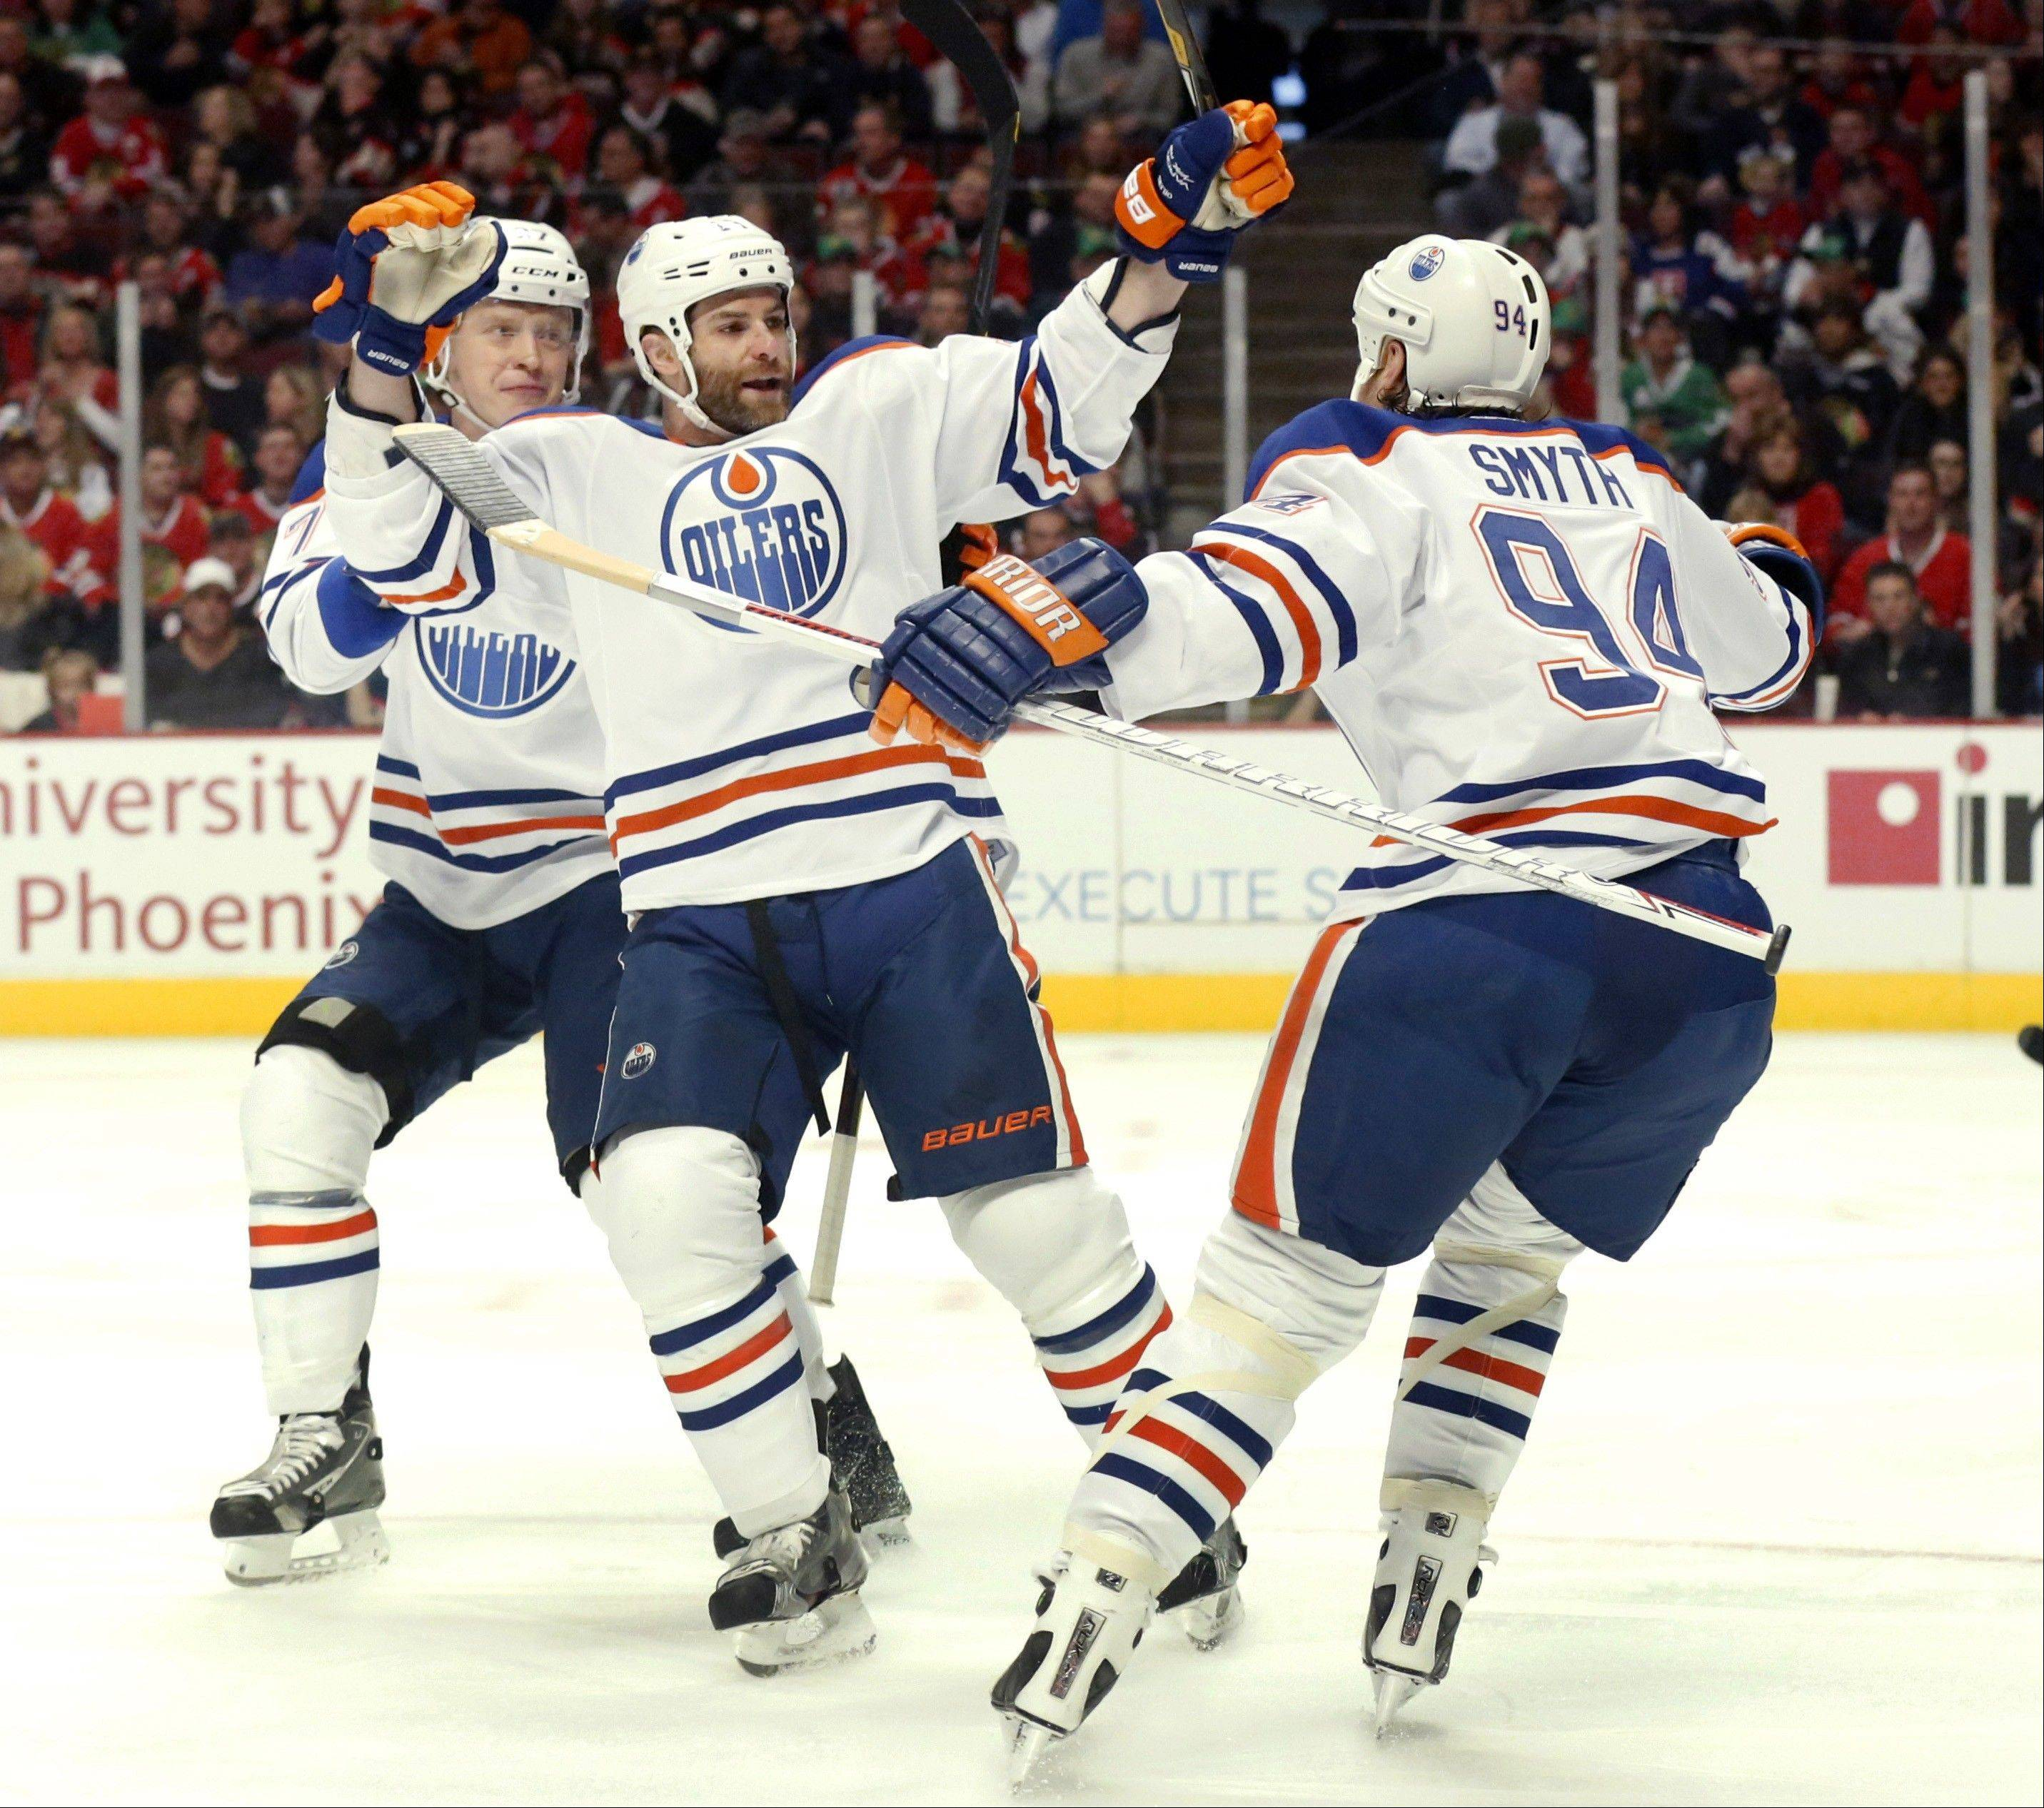 ASSOCIATED PRESS Edmonton Oilers' Mike Brown, center, celebrates his goal with teammate Lennart Petrell (37), from Finland, and Ryan Smyth (94) during the first period.